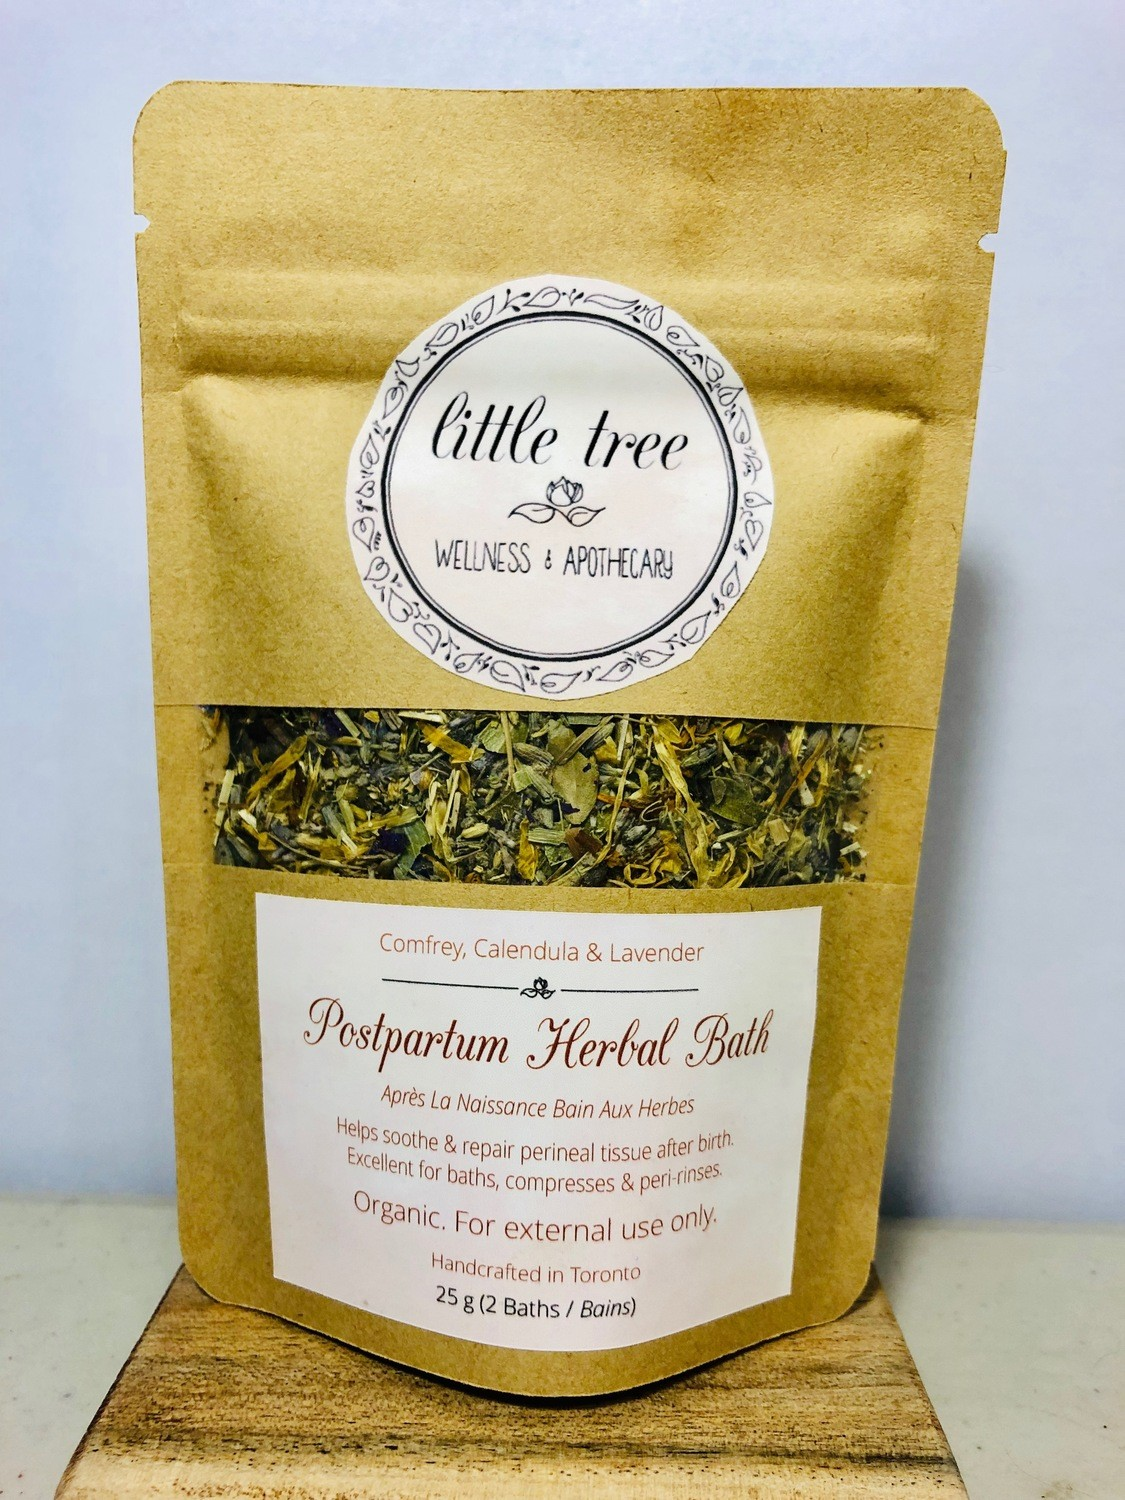 Postpartum Herbal Bath (25 g)